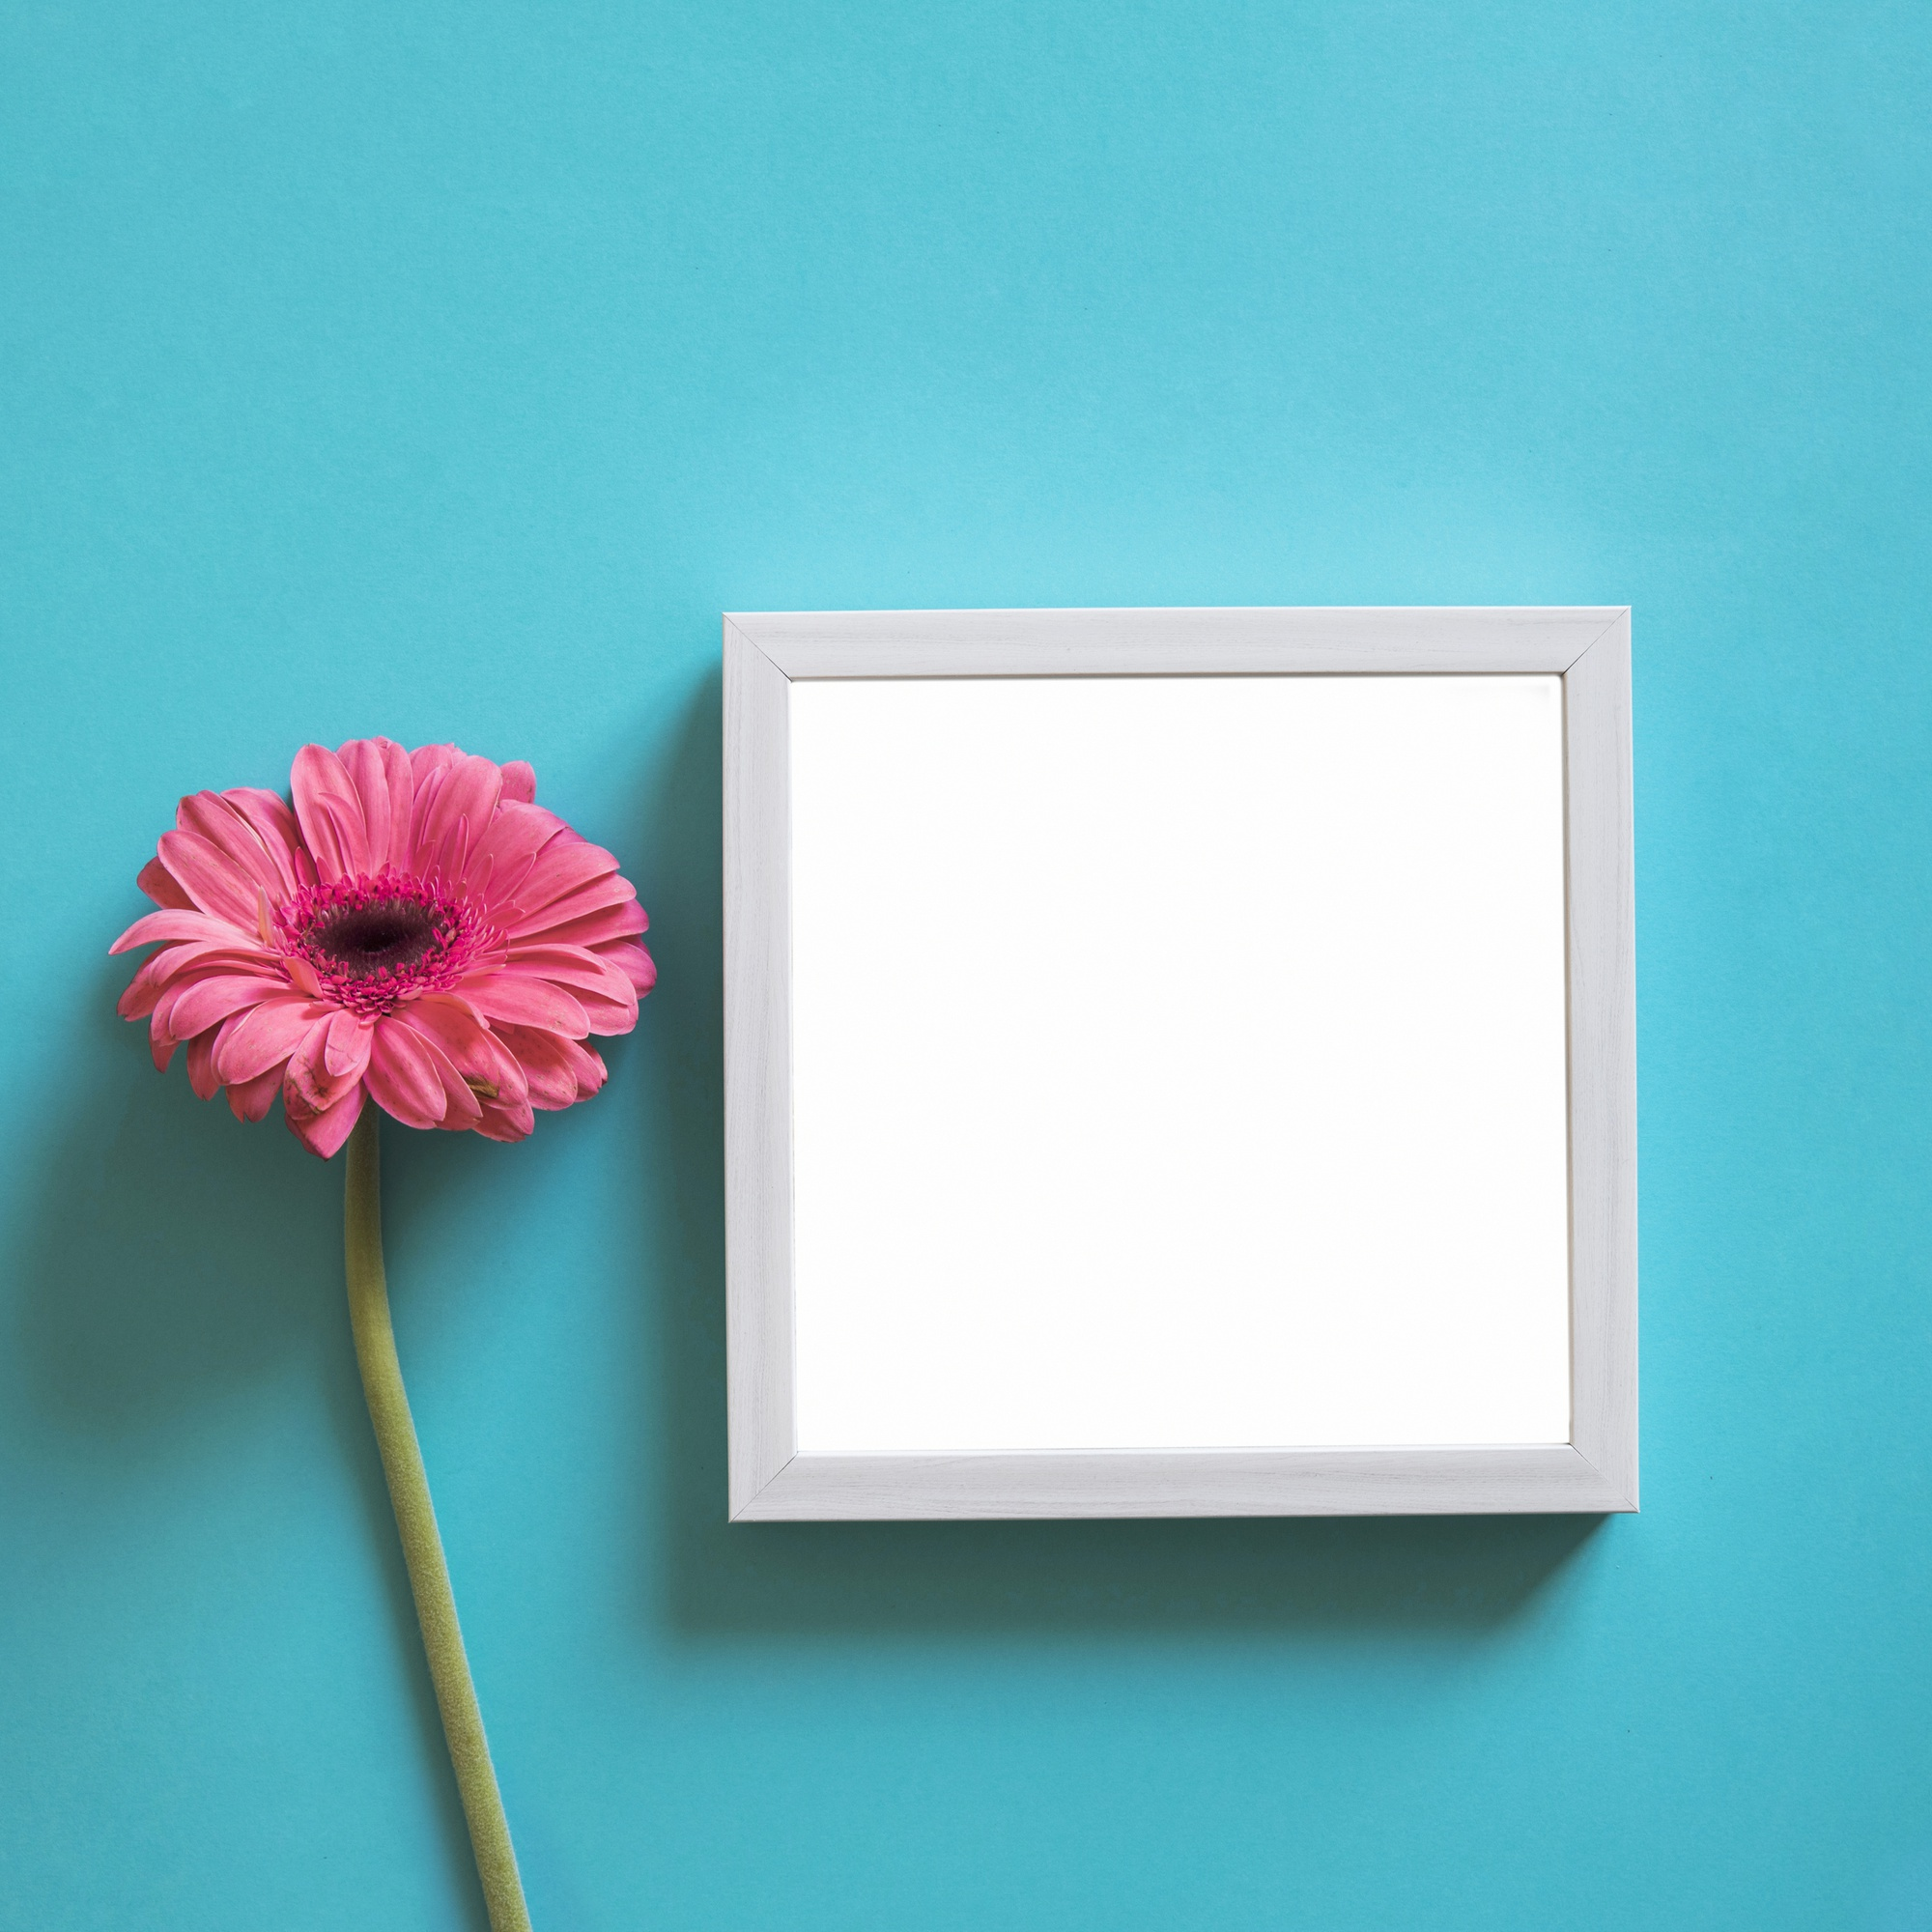 Frame and pink flower